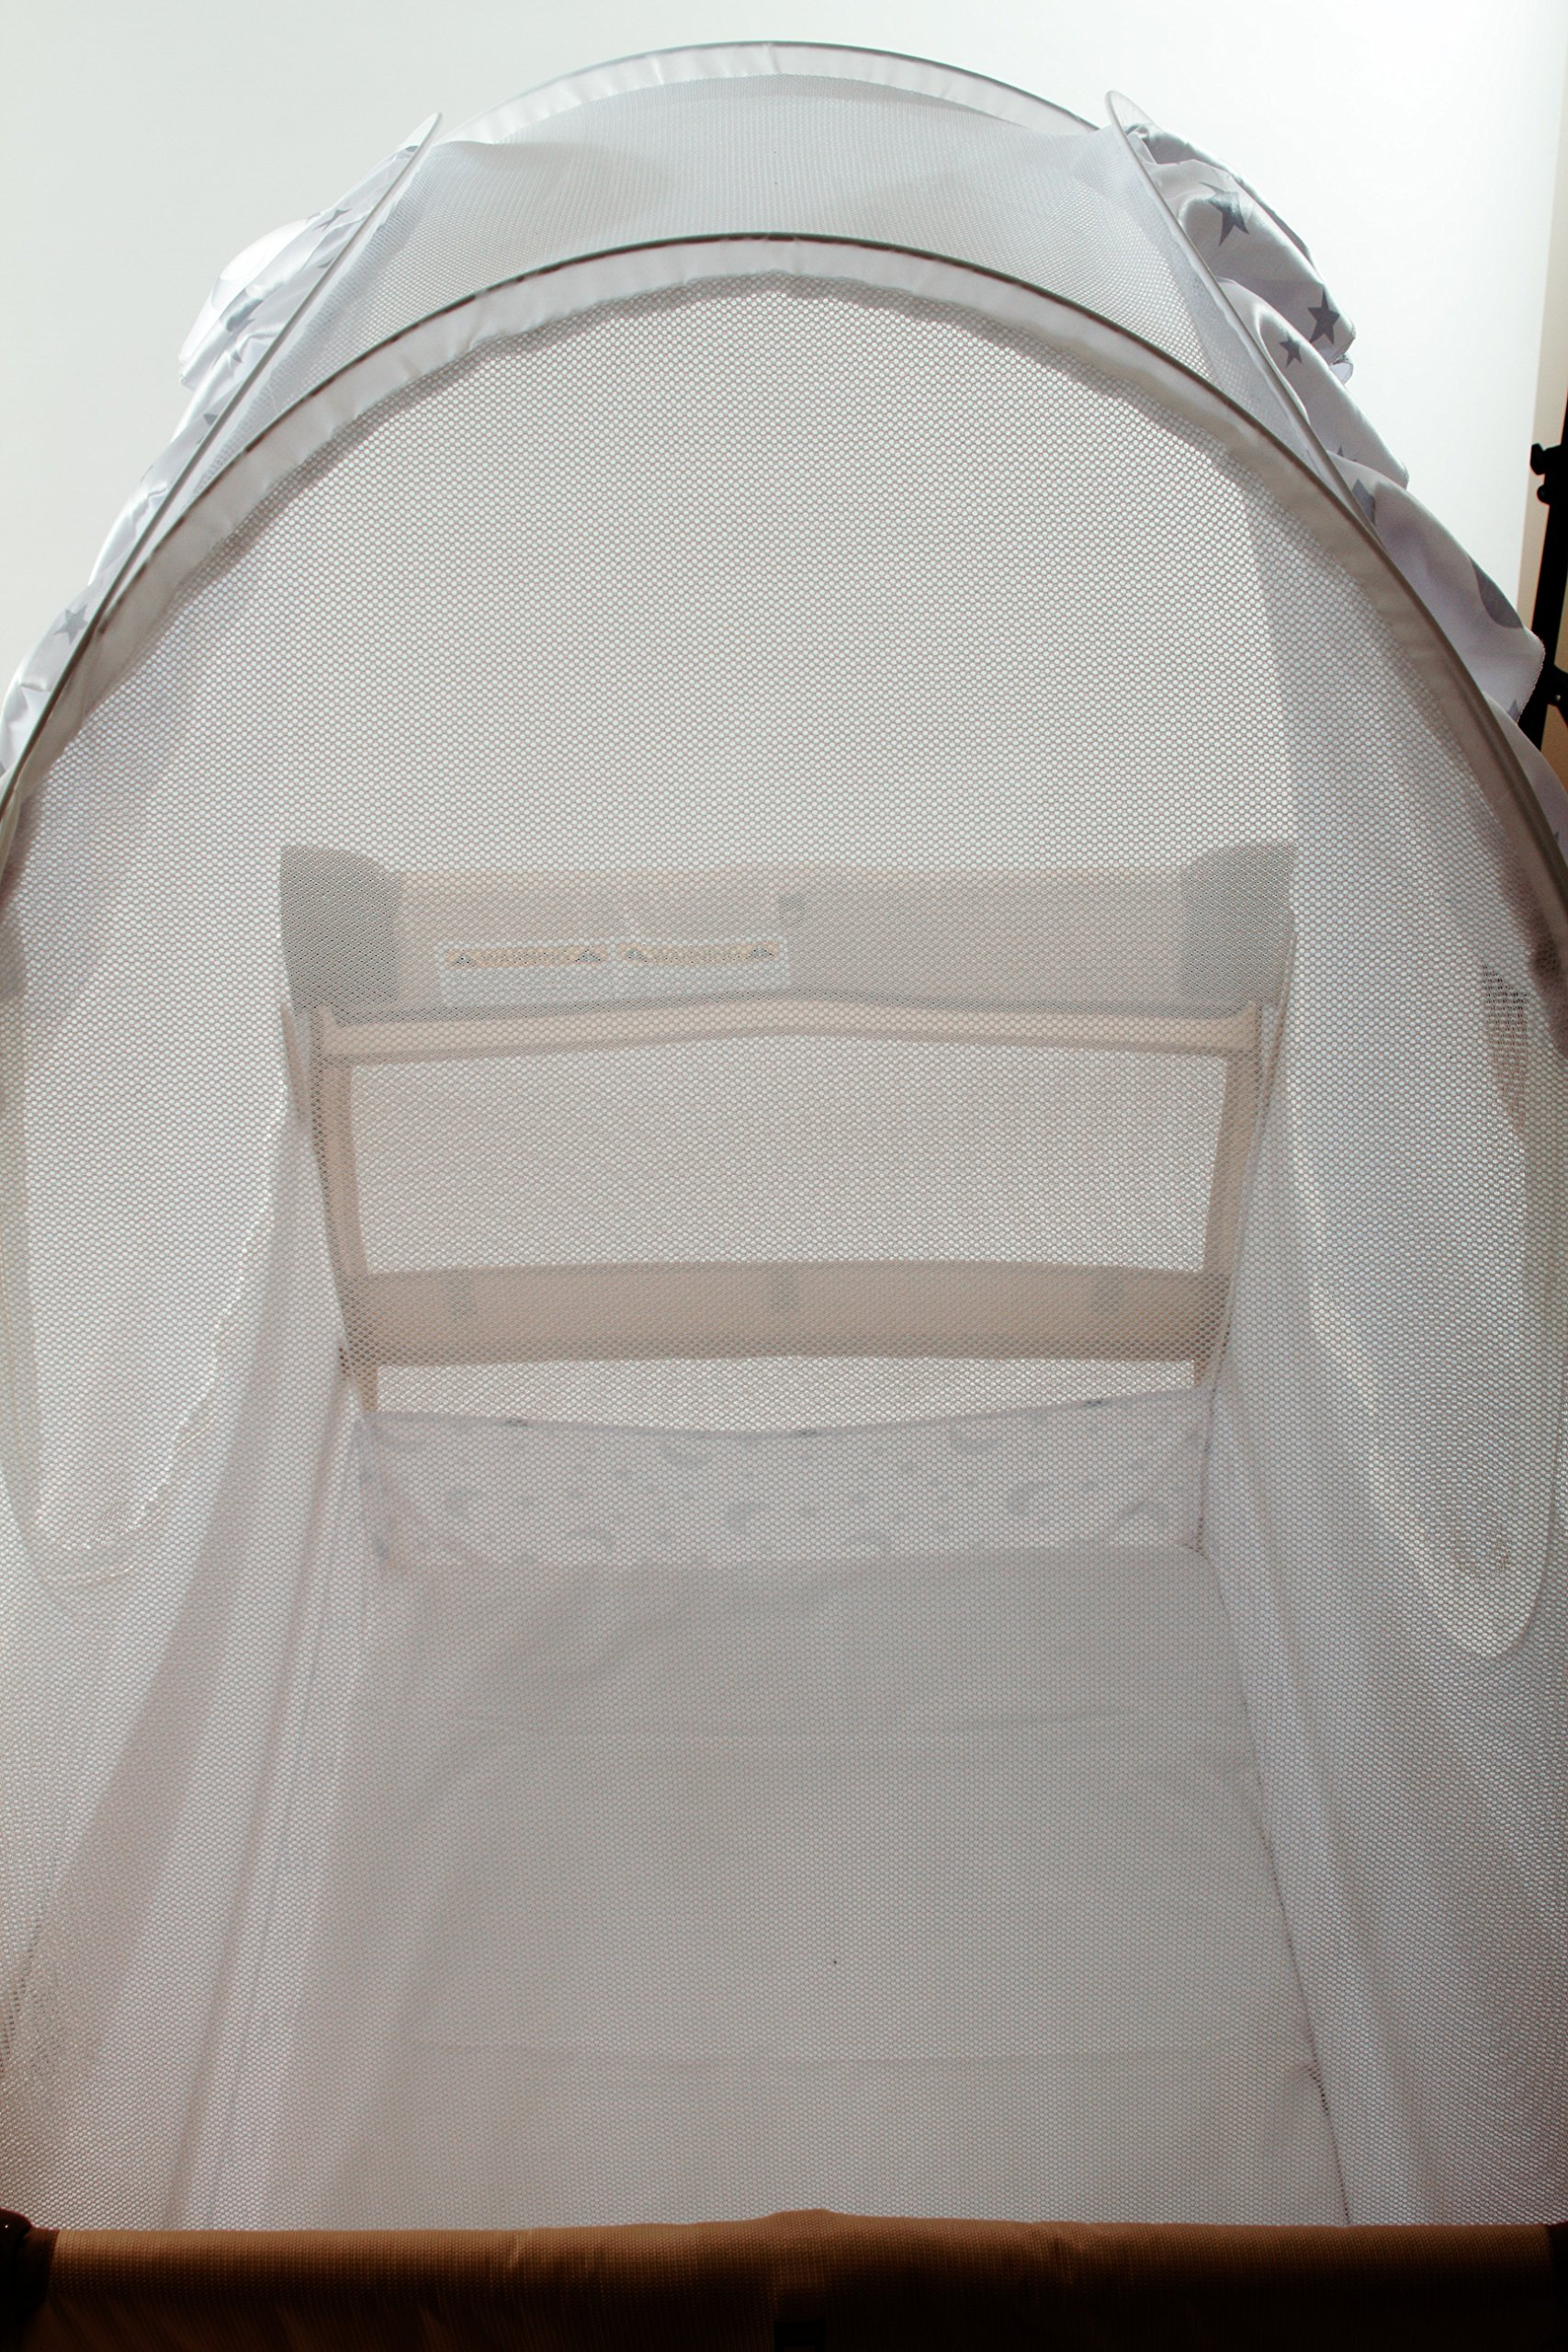 Best Travel Baby Crib Safety Tent Fits Pack N Play Tried and Tested - Safe and Secure - Proven to Keep Your Baby Safe from Climbing Out. Finest Quality Original Australian Design Pop Up Crib Canopy